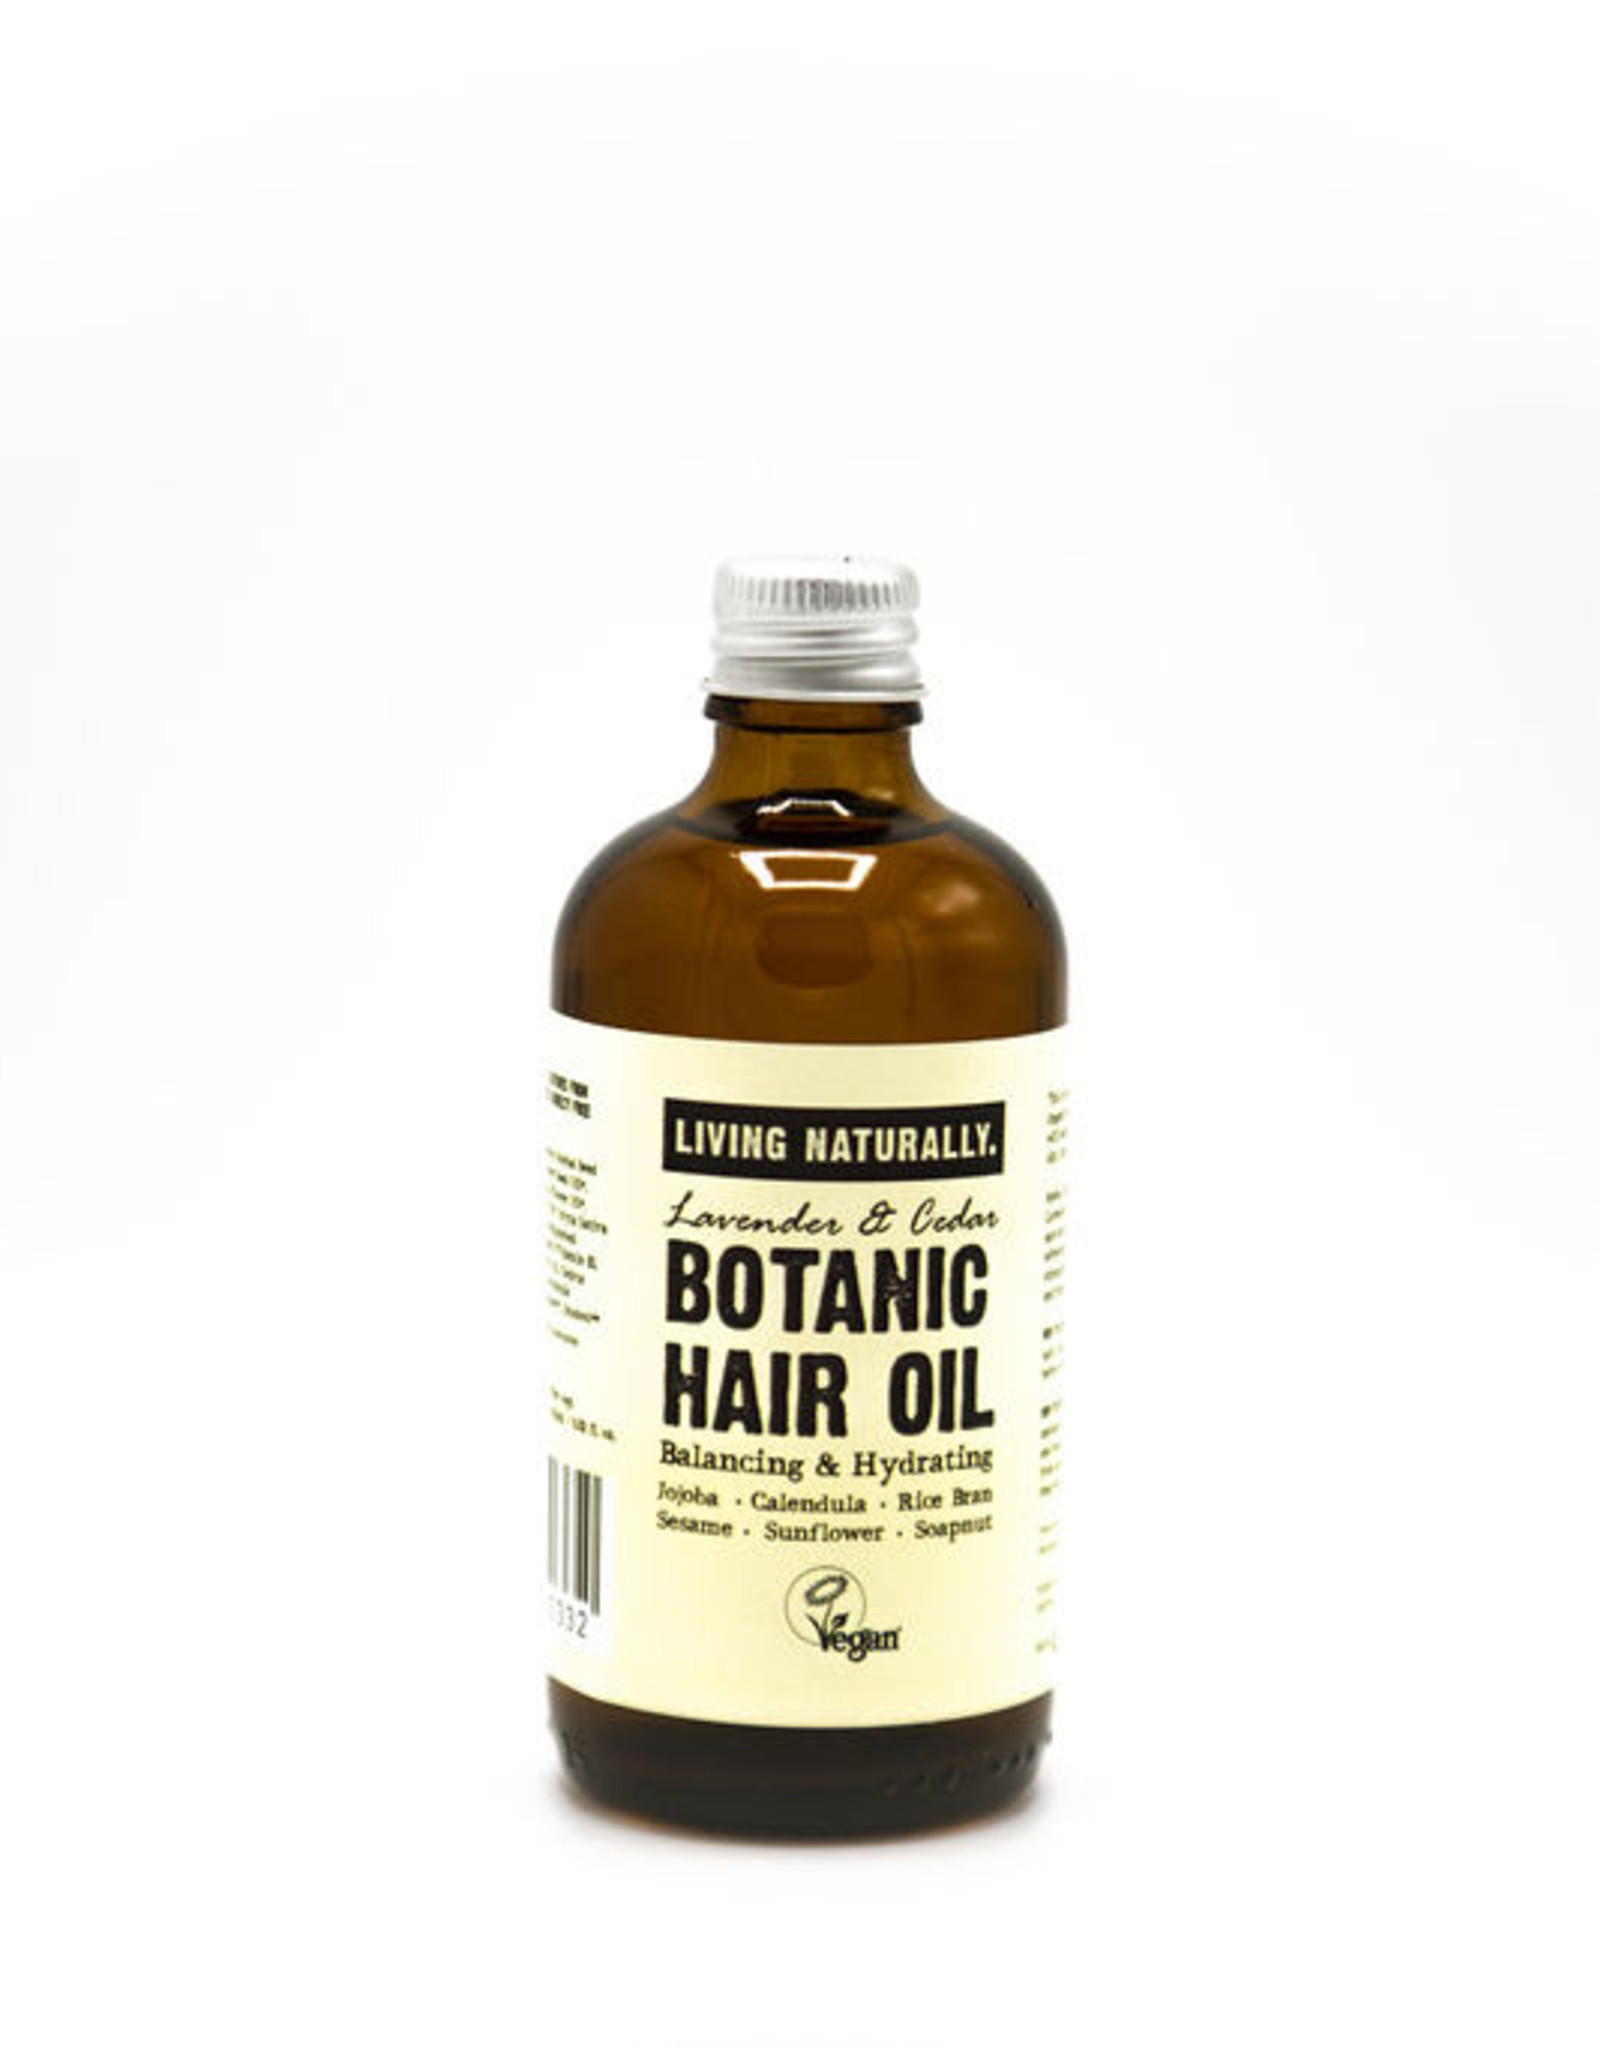 Botanic hair oil